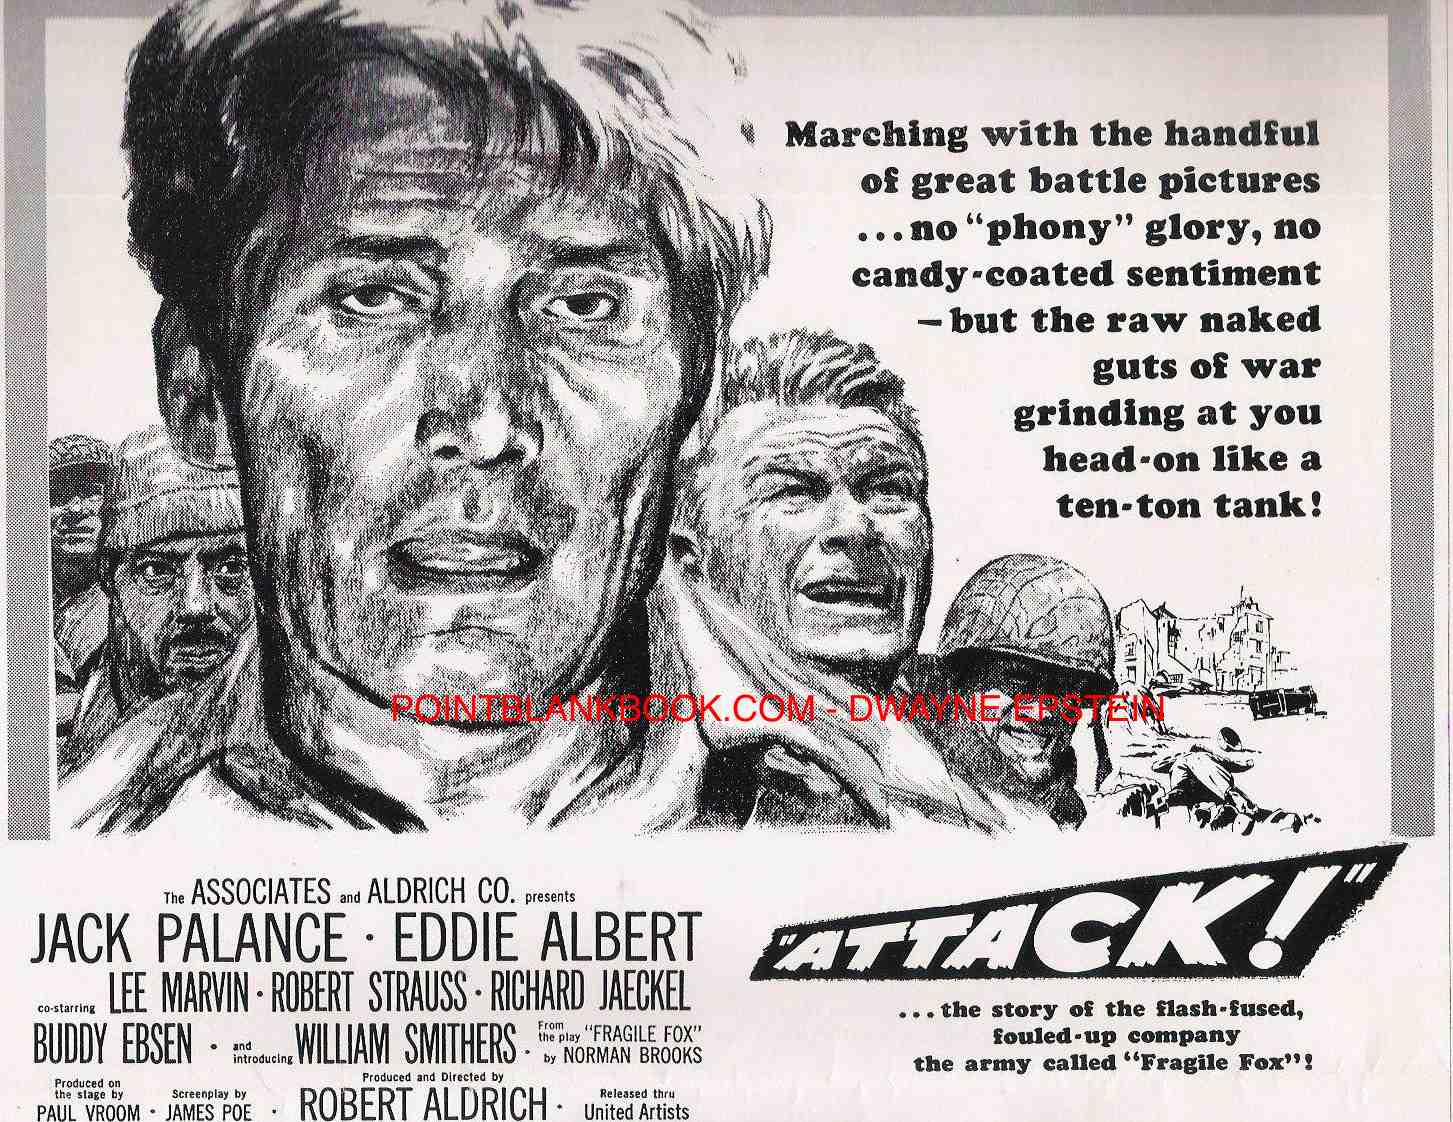 The tag lines aside, the powerful artwork spoke volumes for the film ATTACK!